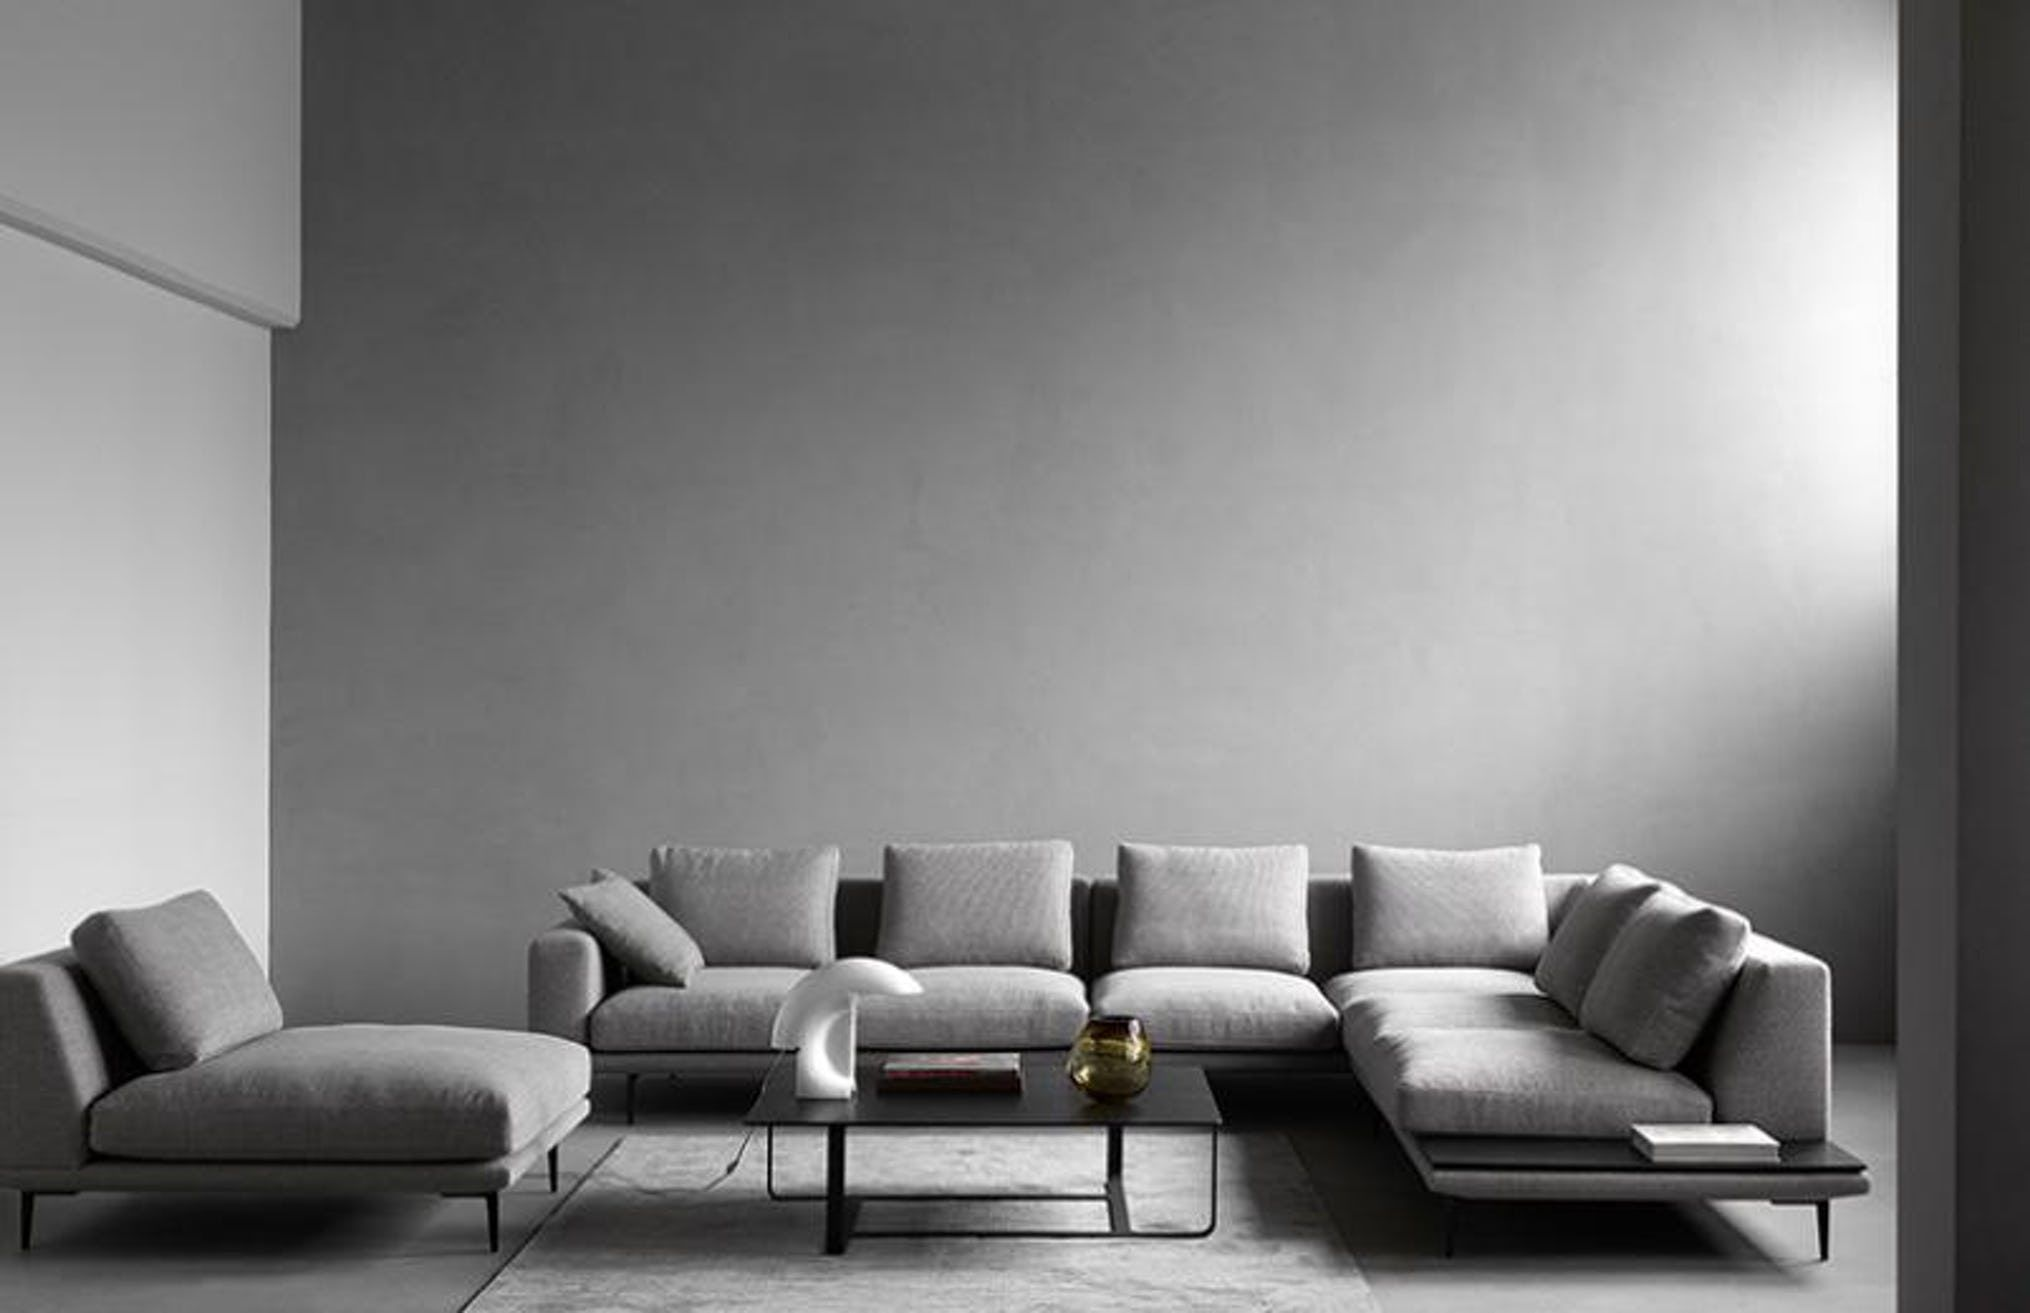 Surface Sofa By Wendelbo Contemporary Sectional Sofa Sofas For Small Spaces Contemporary Furniture Design